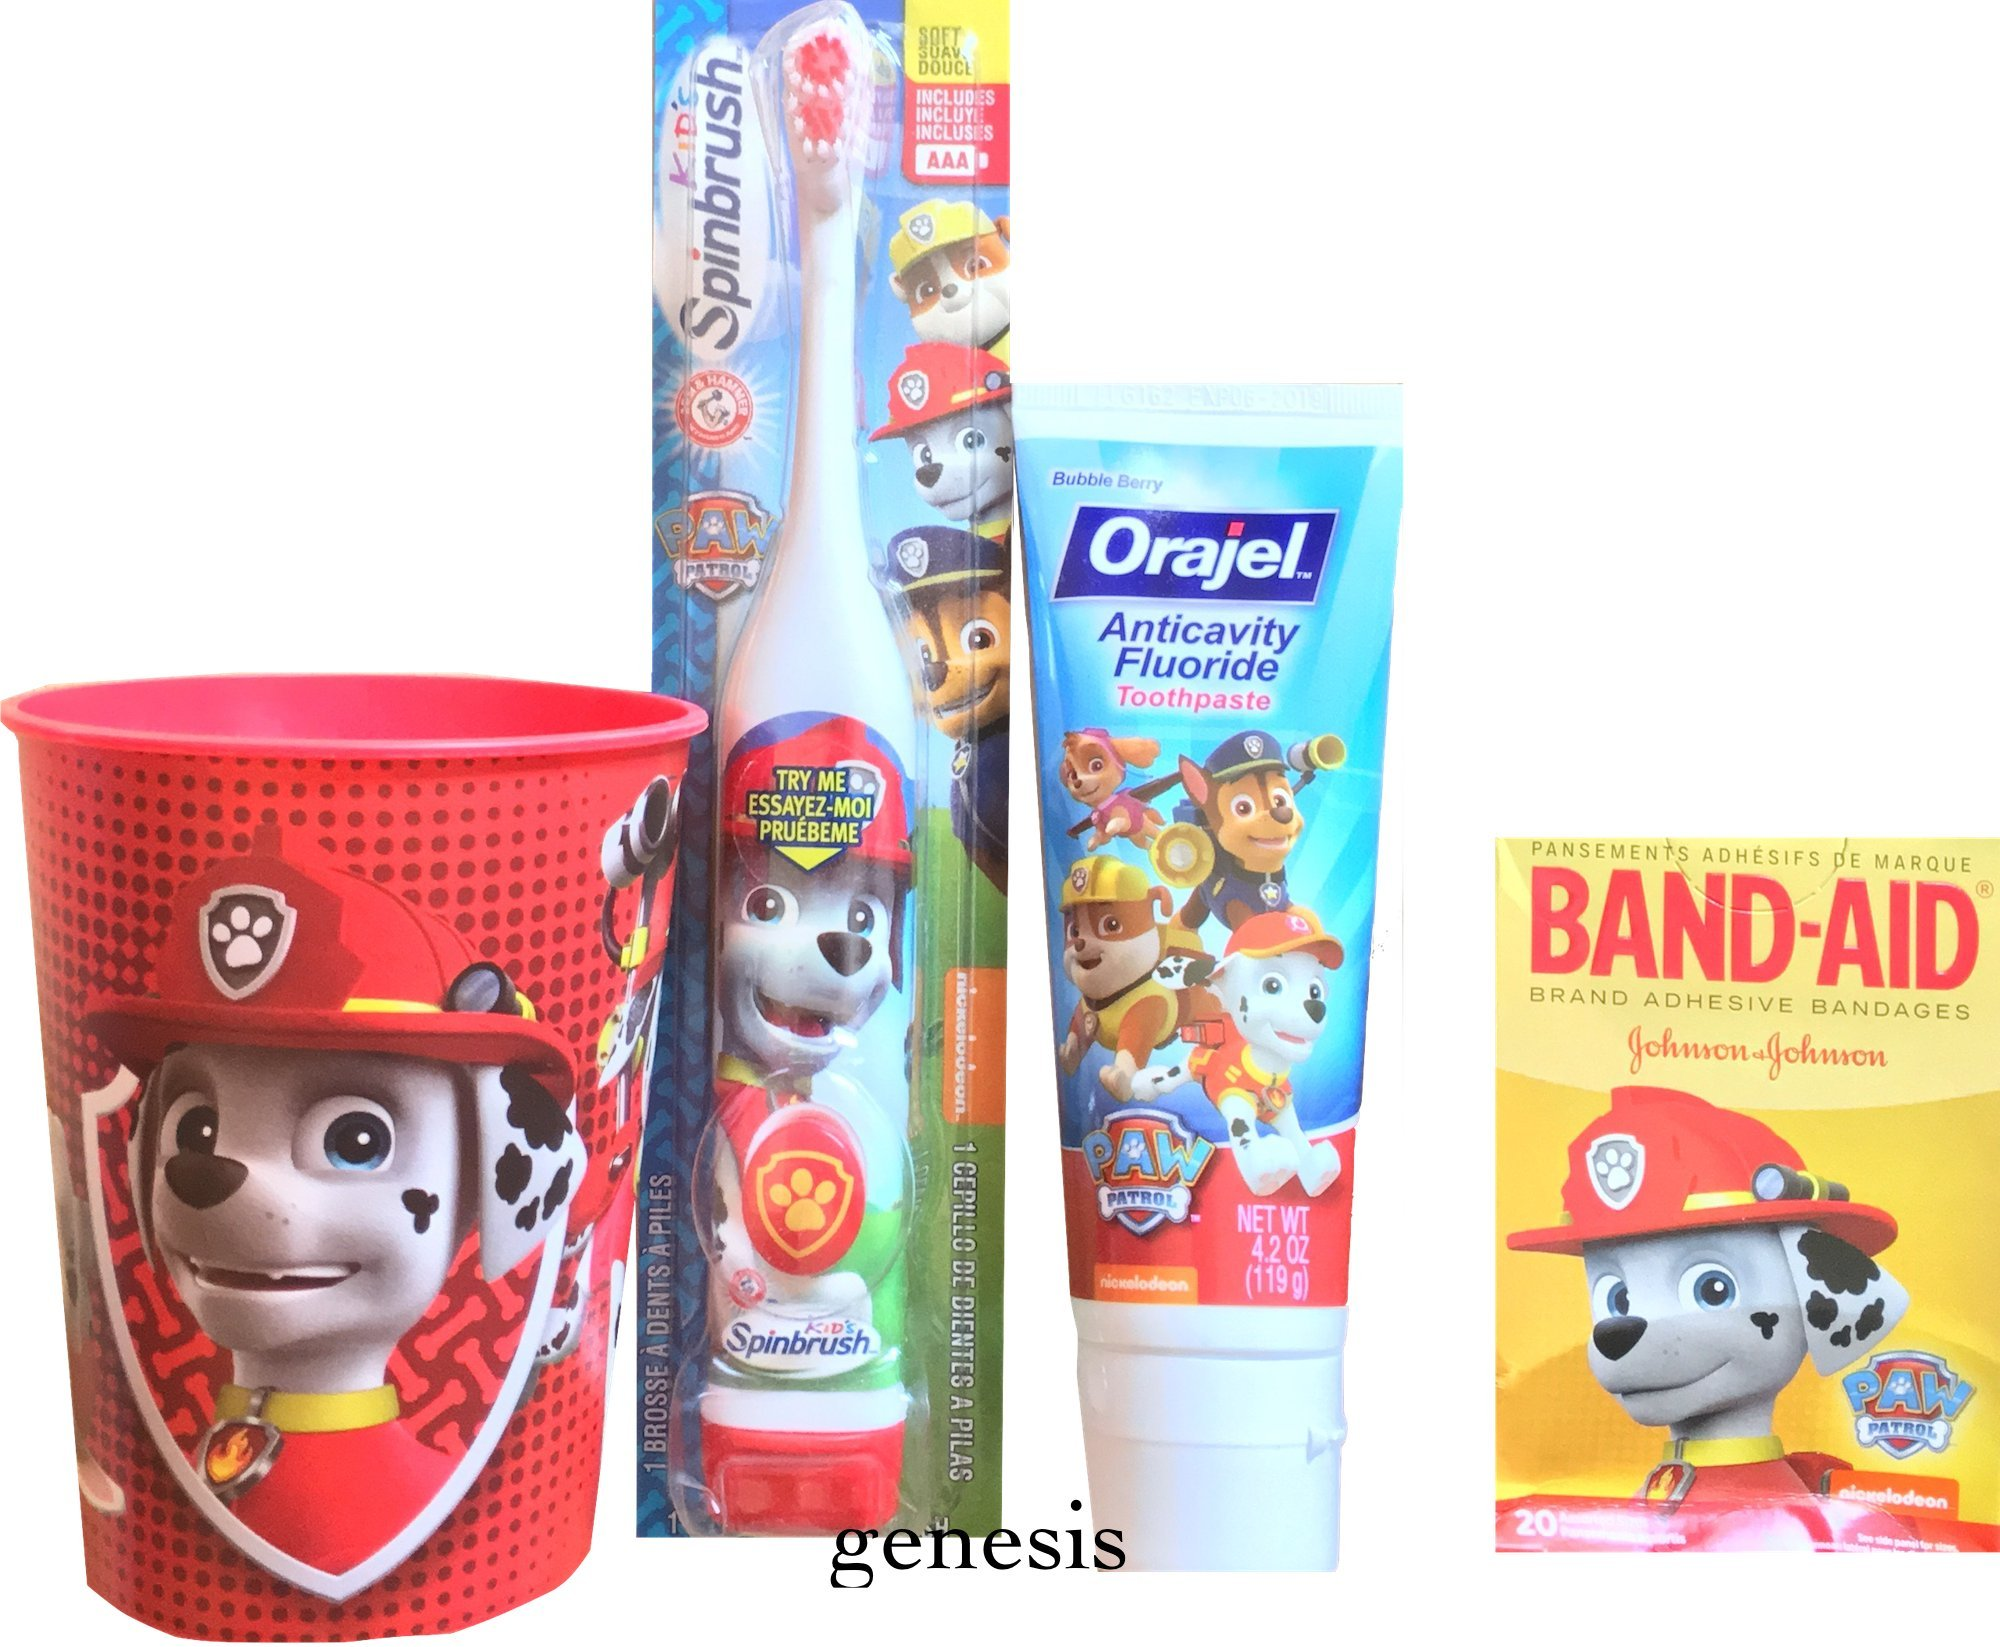 Paw Patrol Children's Oral Hygiene Care Set Powered Toothbrush & Fluoride Toothpaste, Band Aids & Mouth Rinse Cup (Marshall)